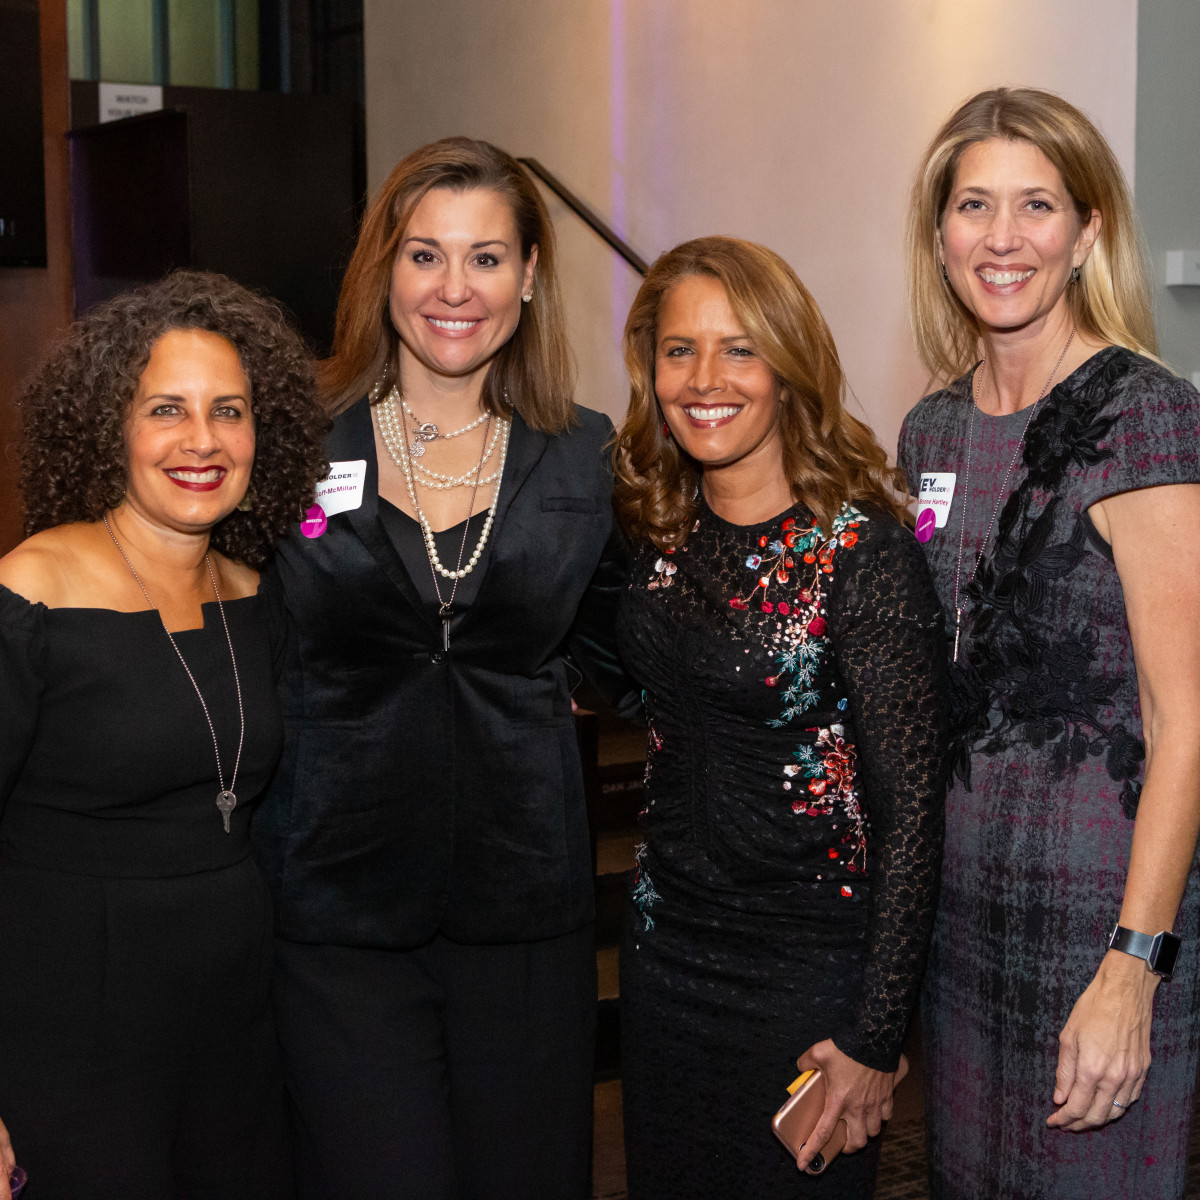 Keyholder 19 Women's Fund at Austin Community Foundation